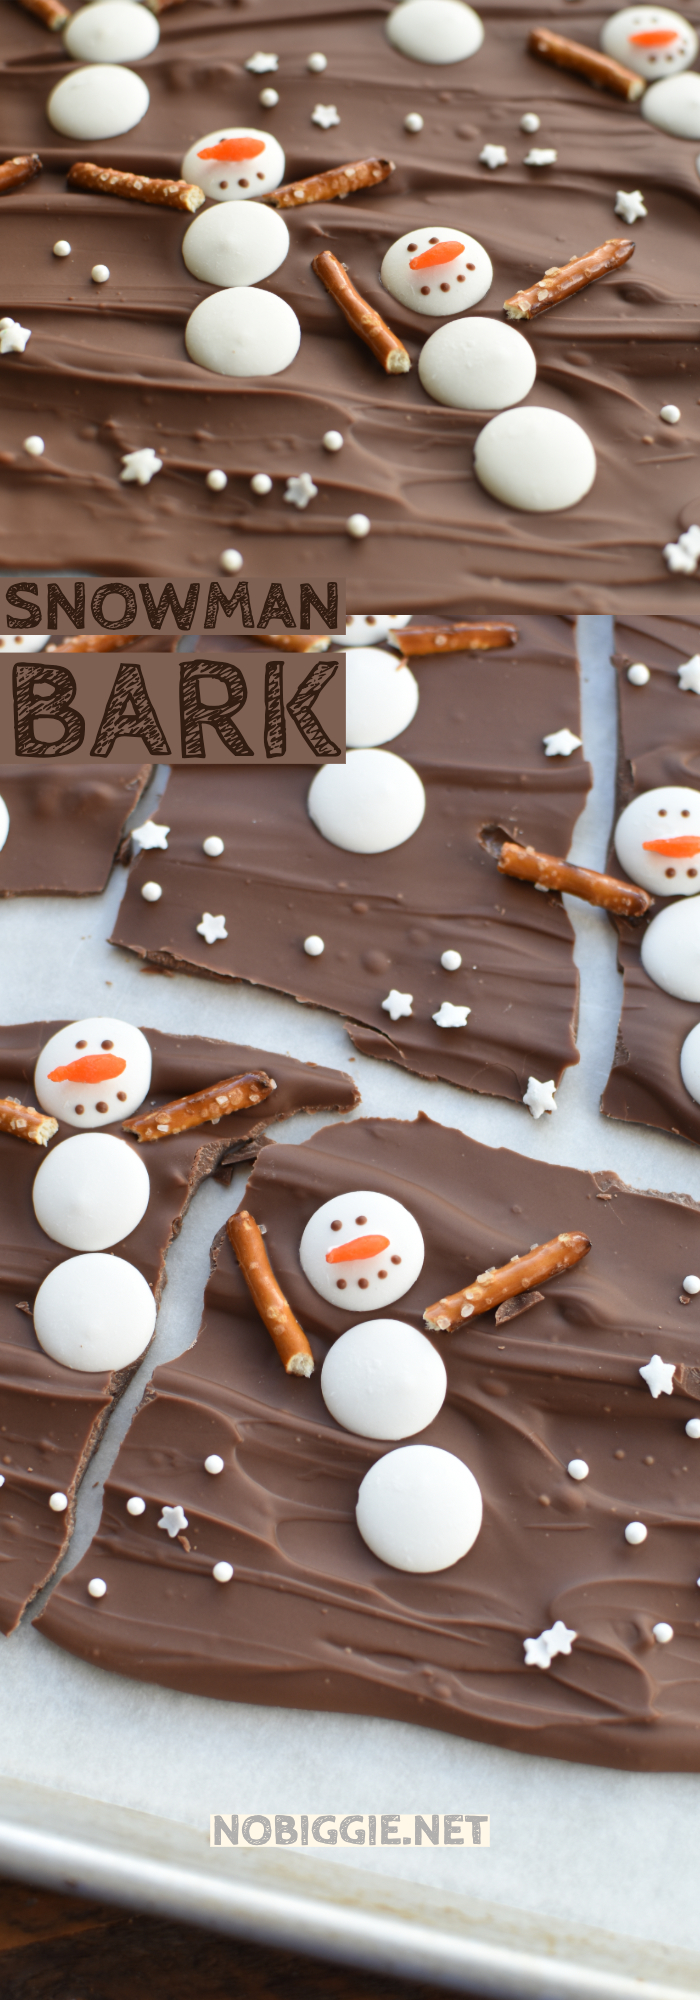 Make snowman bark for the holidays or to celebrate the season of winter. This is a sweet treat everyone will love. #nobiggierecipes #snowmanbark #chocolatebark #chocolatebarkrecipes #chocolatebark #christmasbark